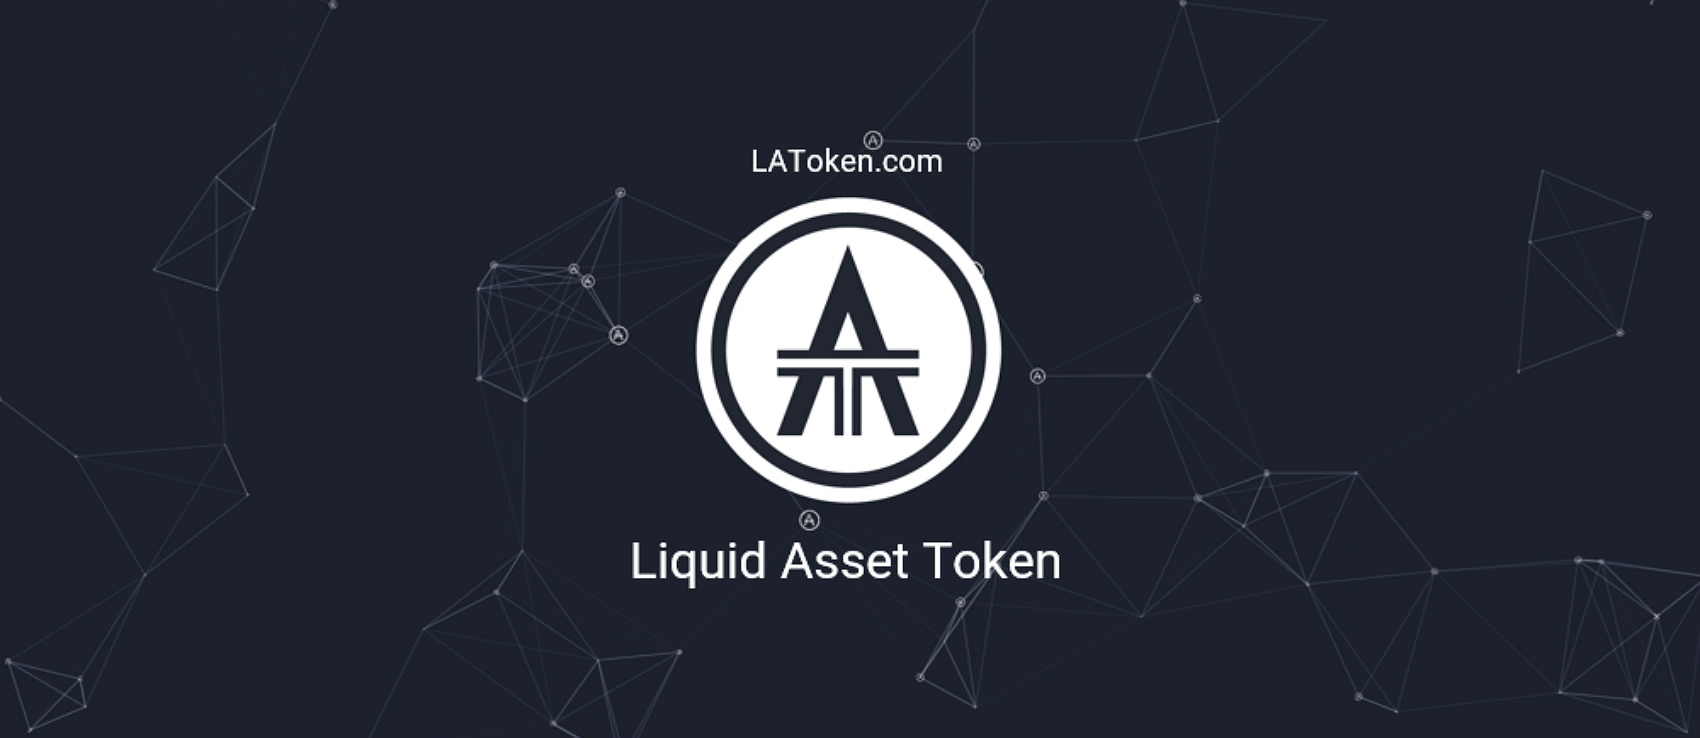 ESTS started trading on LATOKEN